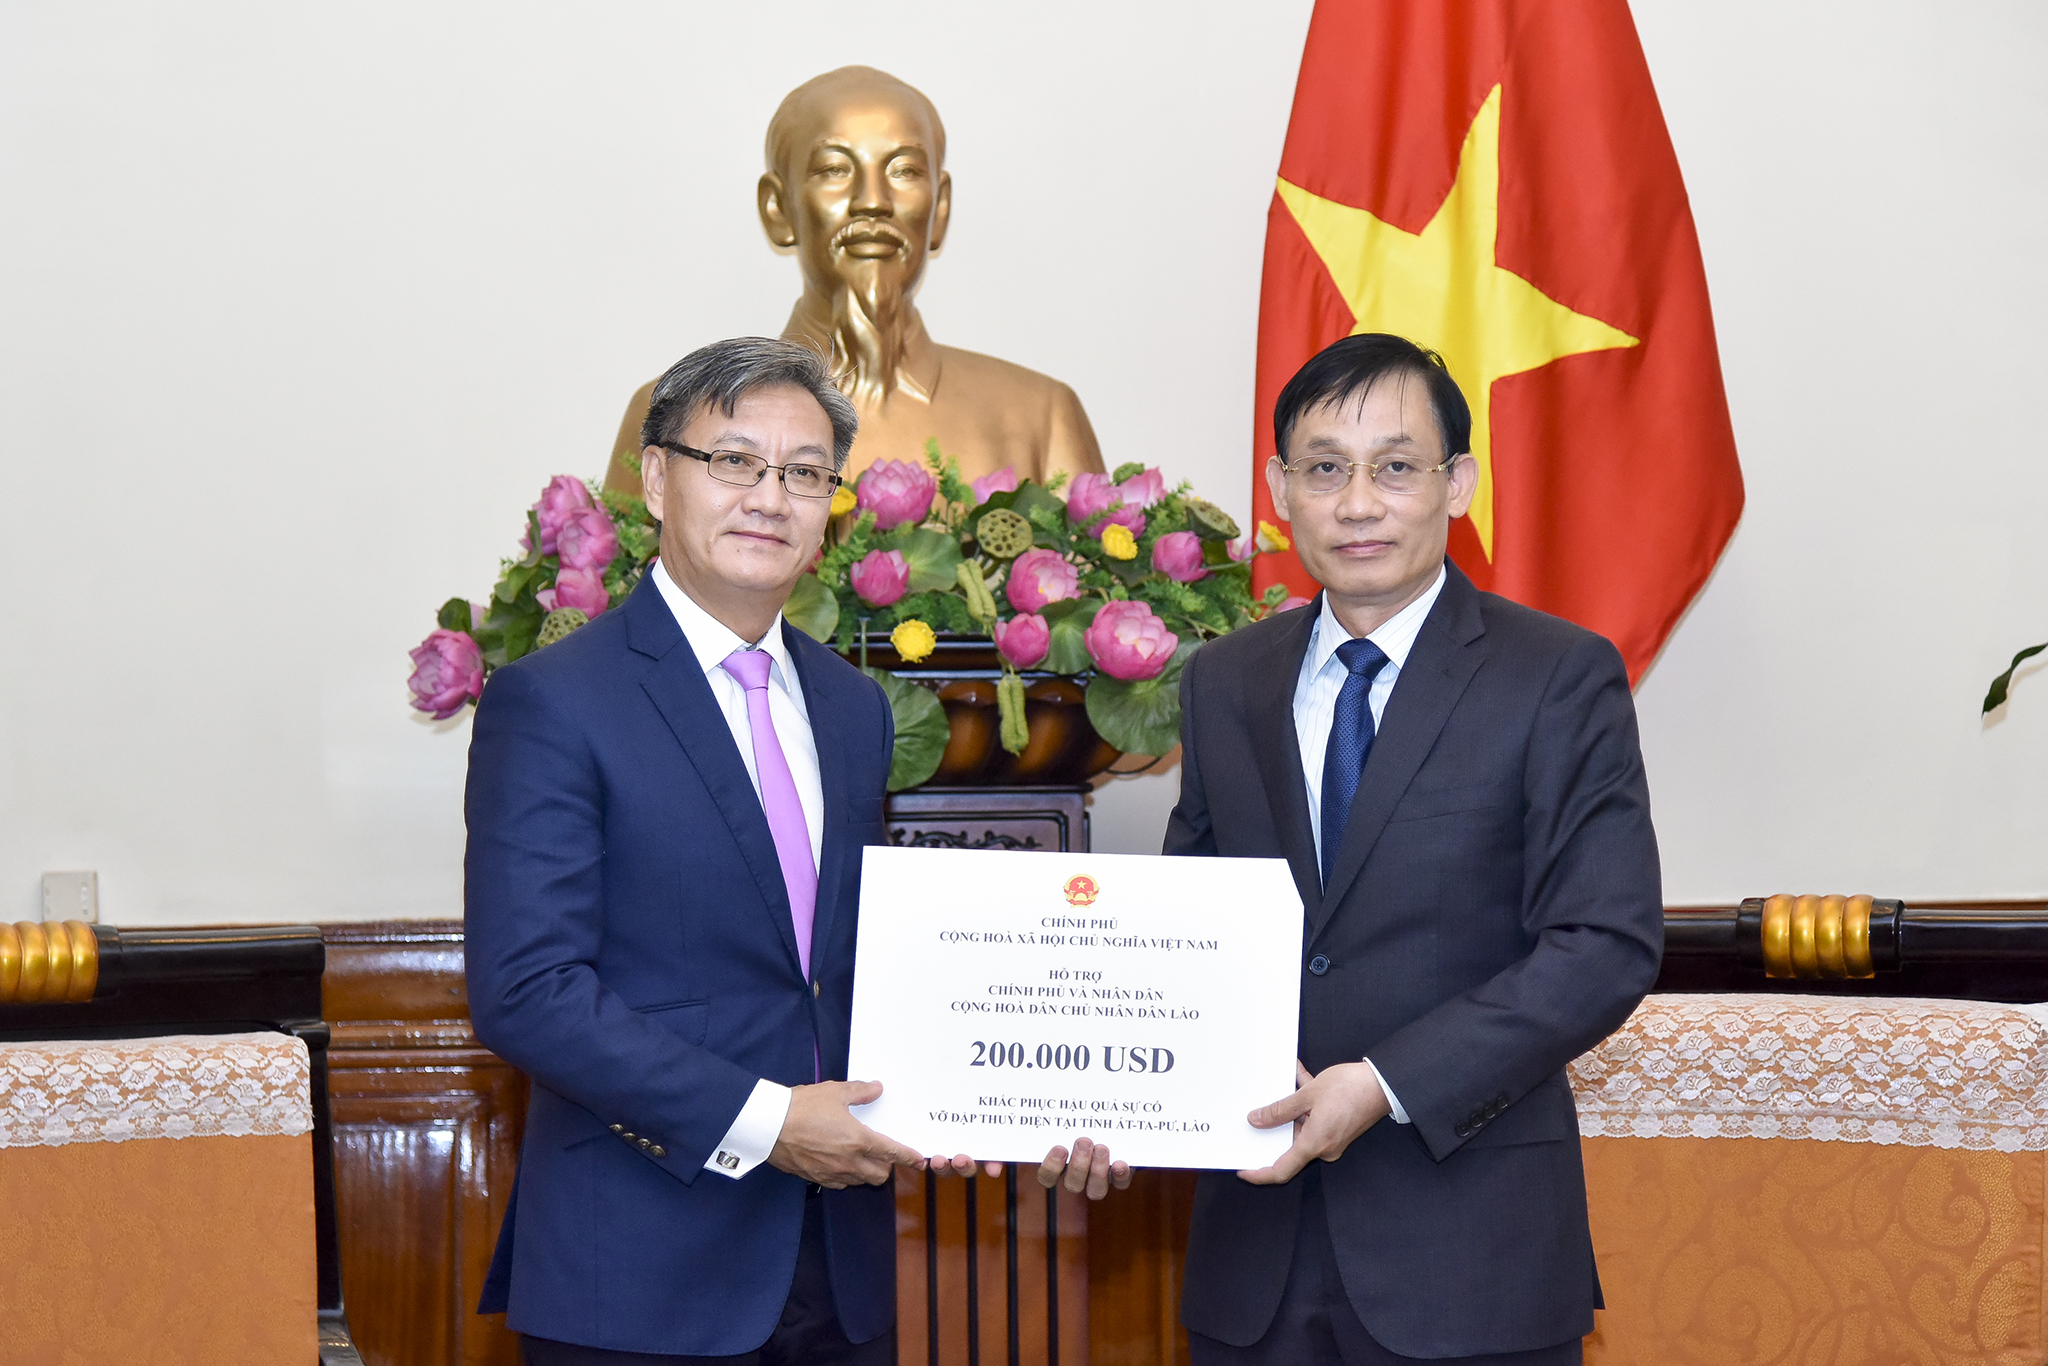 Vietnam offers aid to victims of dam collapse in Laos